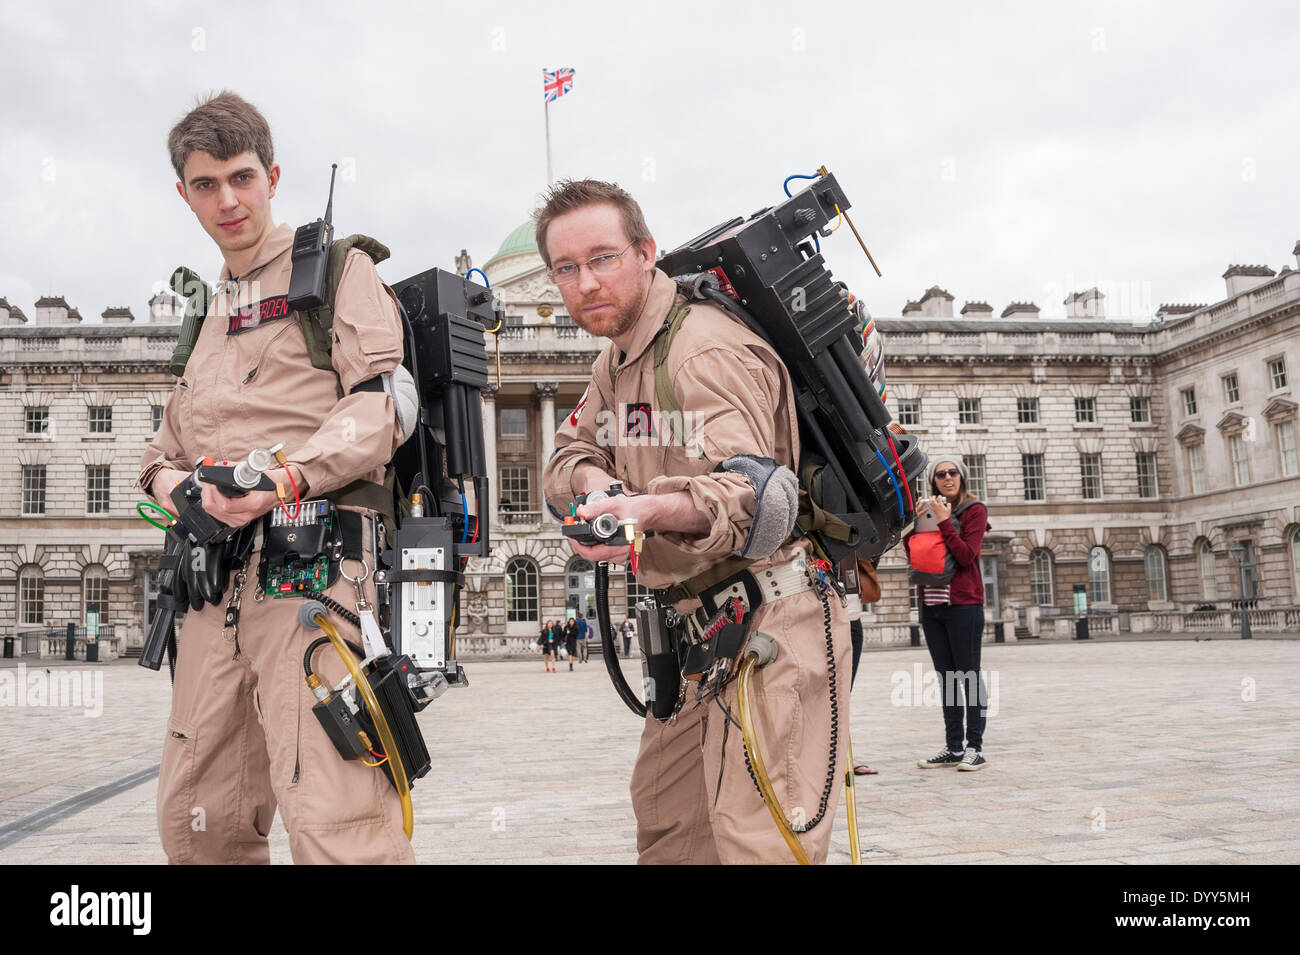 London, 27 April 2014 - people dressed as their favourite sci-fi characters take part in the Sci-Fi London 2014 costume parade starting at Somerset House and finishing at the BFI on the South Bank.  Two men dressed as characters from the movie, Ghostbusters.      Credit:  Stephen Chung/Alamy Live News - Stock Image